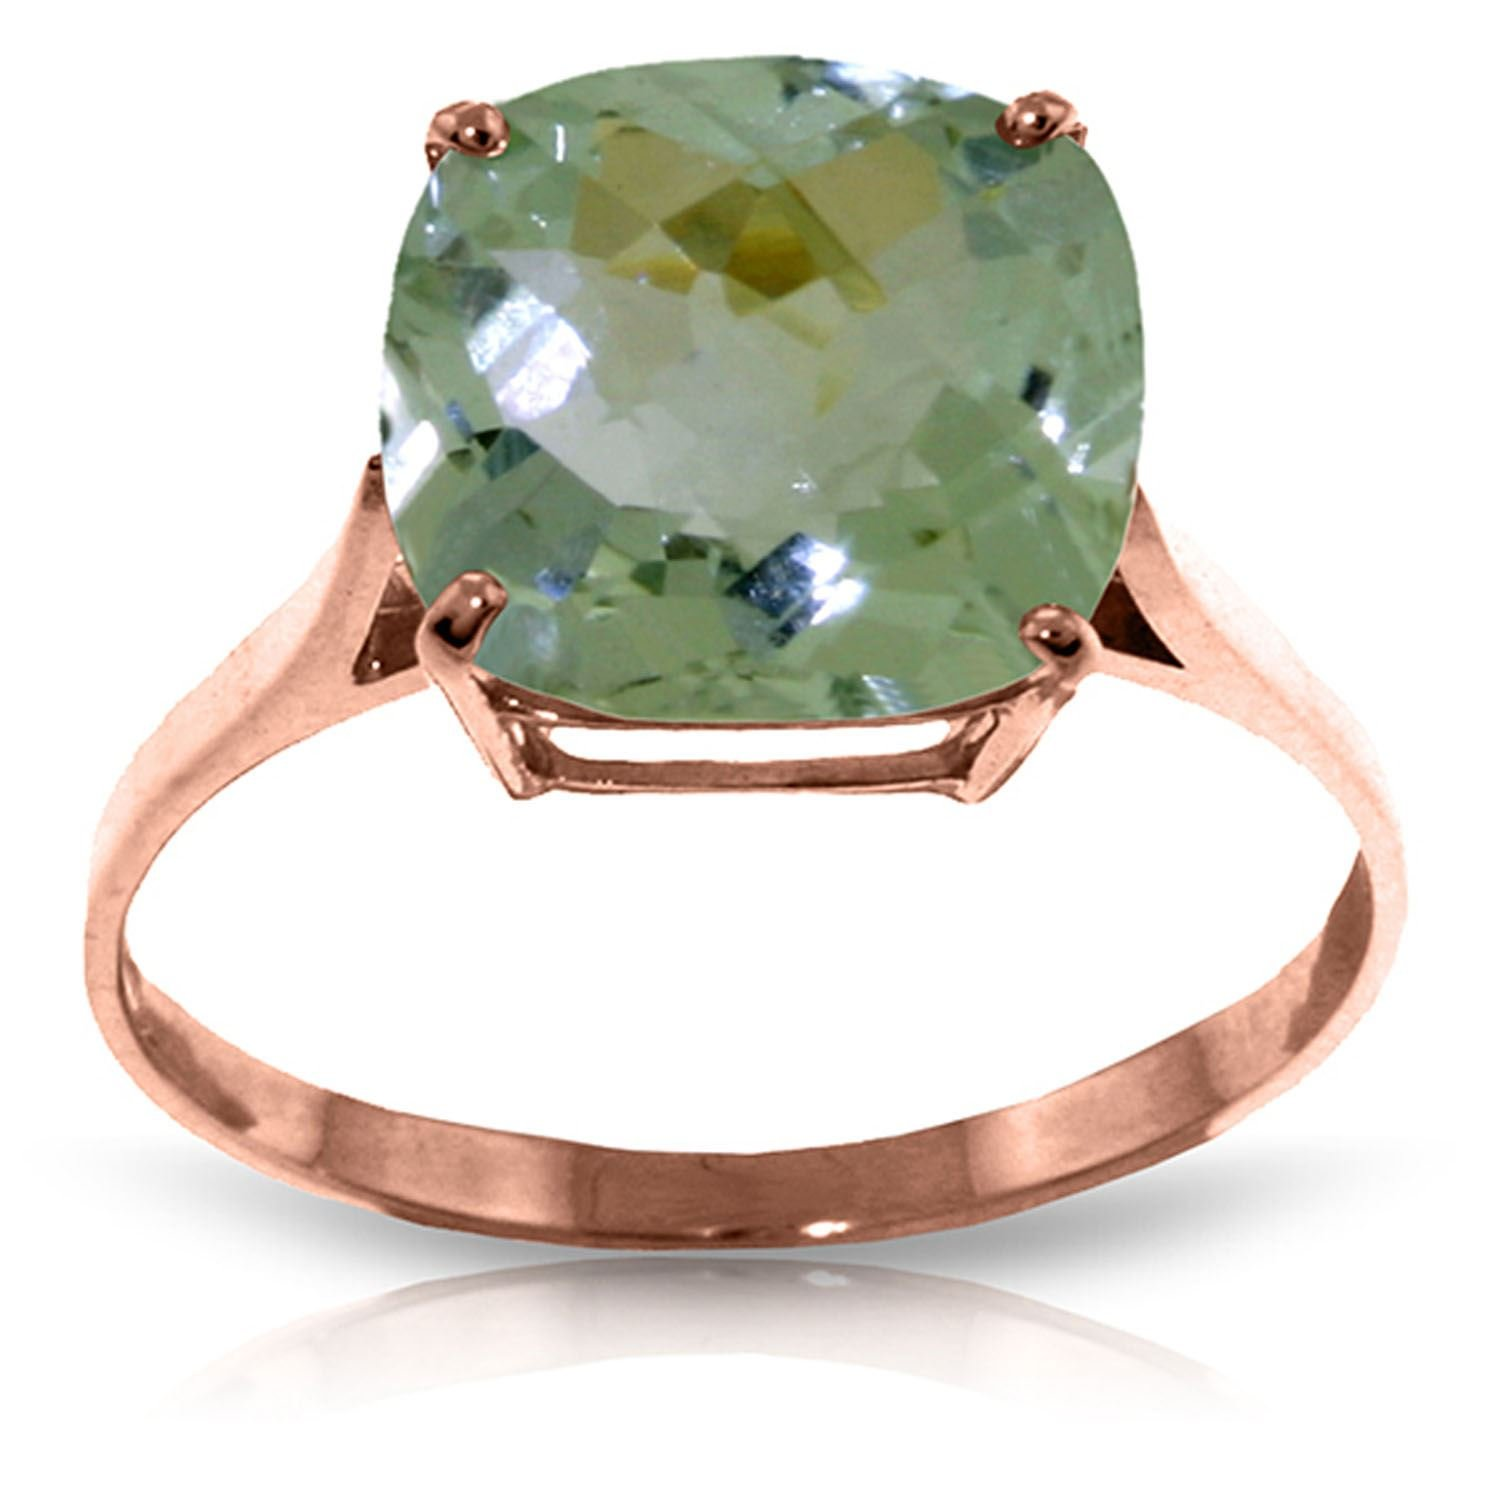 ALARRI 3.6 CTW 14K Solid Rose Gold Spellbound Green Amethyst Ring With Ring Size 5